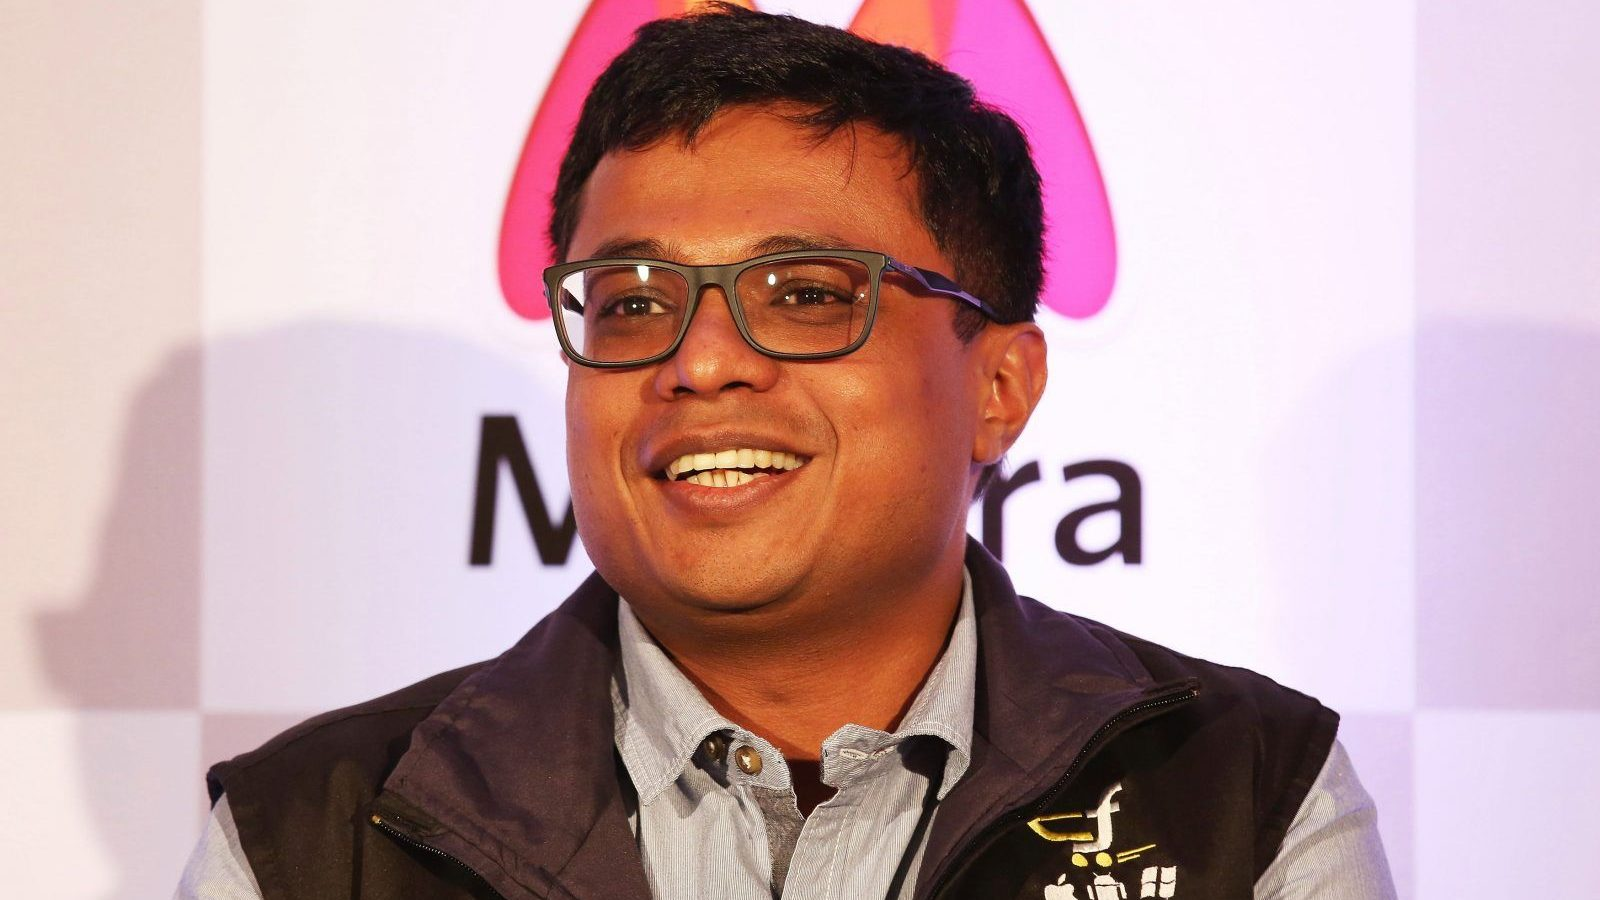 epa04744454 Flipkart CEO Sachin Bansal addresses a news conference in Bangalore, India, 12 May 2015. India?s e-commerce giants Flipkart and largest online fashion retailer Myntra will become a mobile app-only shopping platform starting 15 May, which intended to accelerate a consumer shift towards using smartphones to shop online, save cost and reduce dependence. The number of mobile Internet users in India is expected to reach 213 million by June, according to a 2014 report and it will be approximately 480 million mobile Internet users by end of 2017.  EPA/JAGADEESH NV